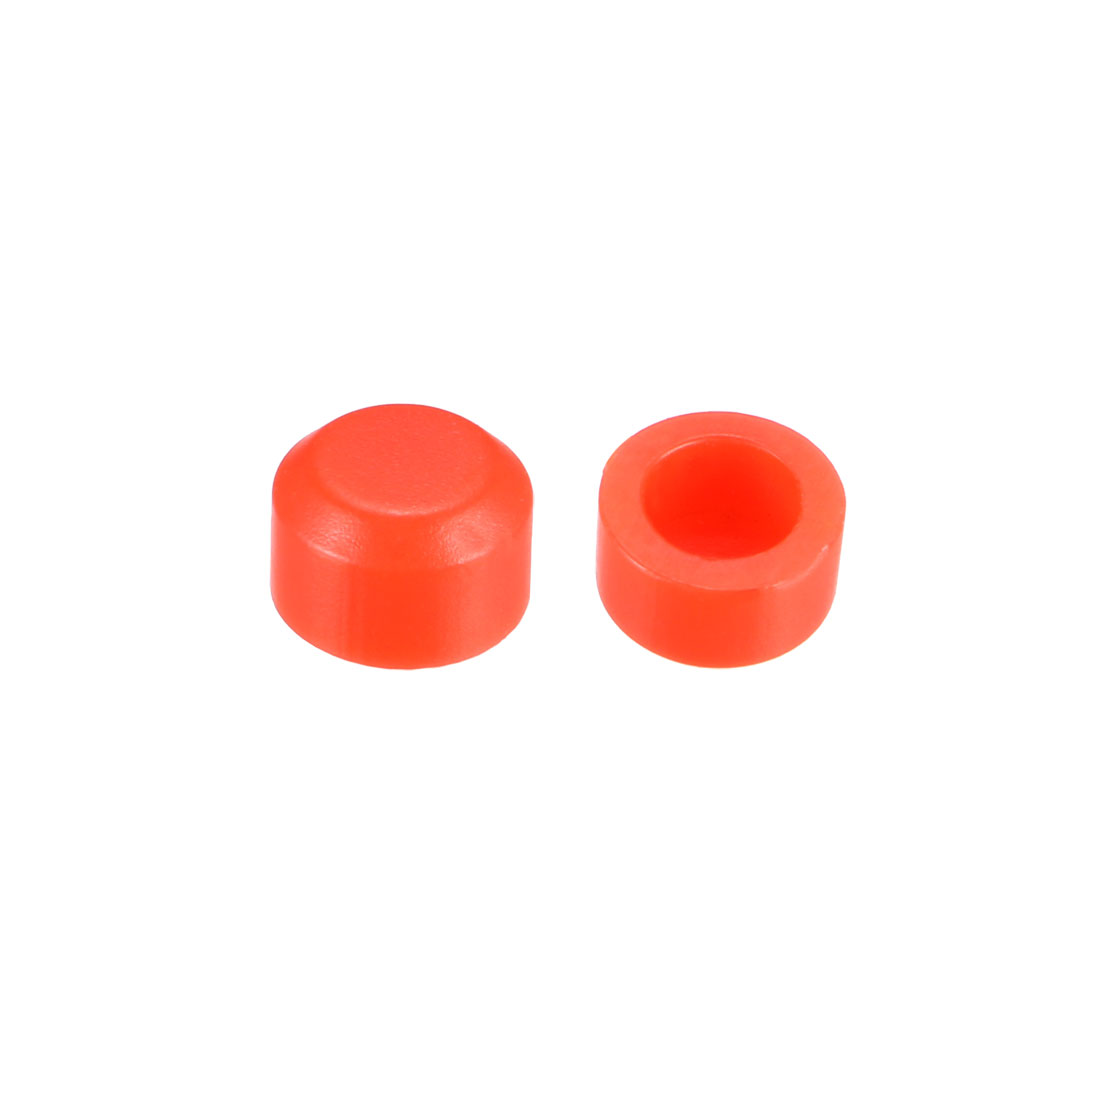 25pcs 3.1mm Hole Dia Pushbutton Caps Cover Keycaps Red for 6x6 Tactile Switch